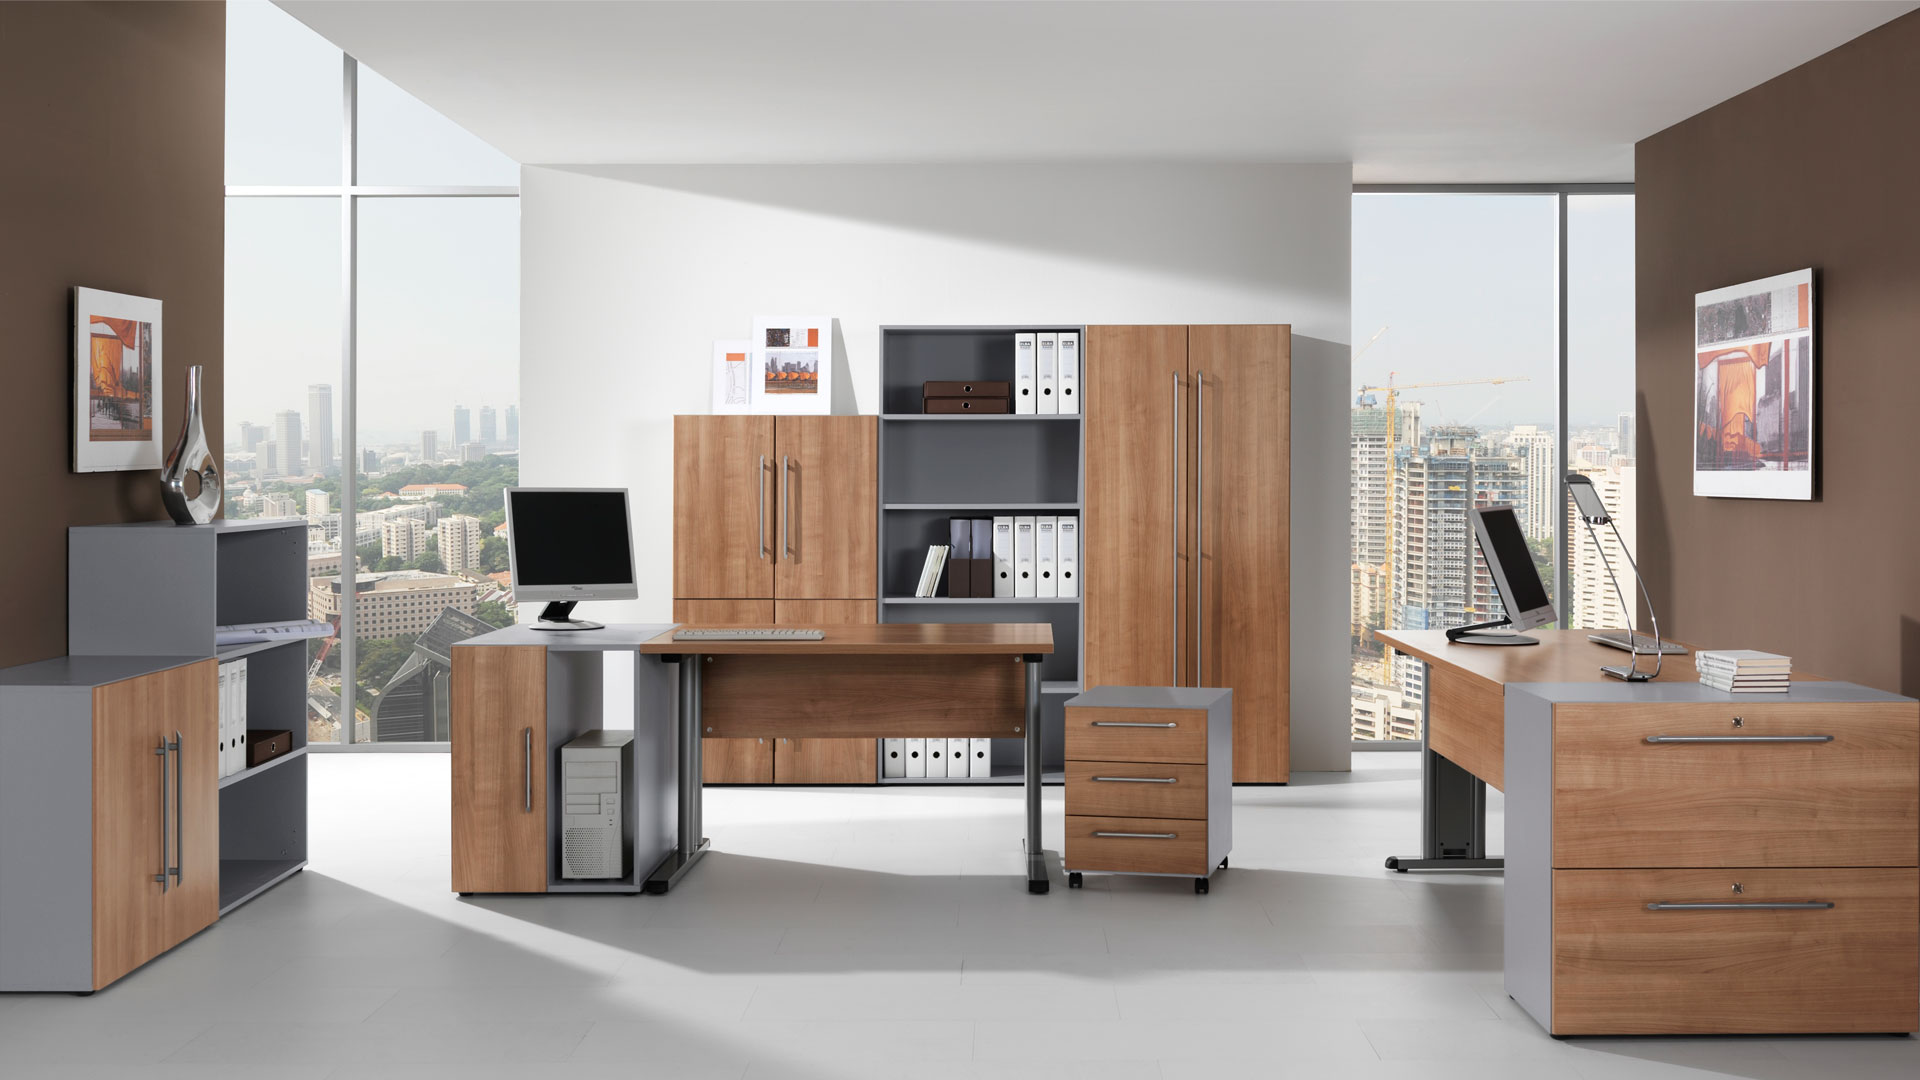 Besides That, An Office Desk Is The Central Equipment For Organizing Your  Belongings. A Well Organized Office Space Is Paramount For Work Efficiency.